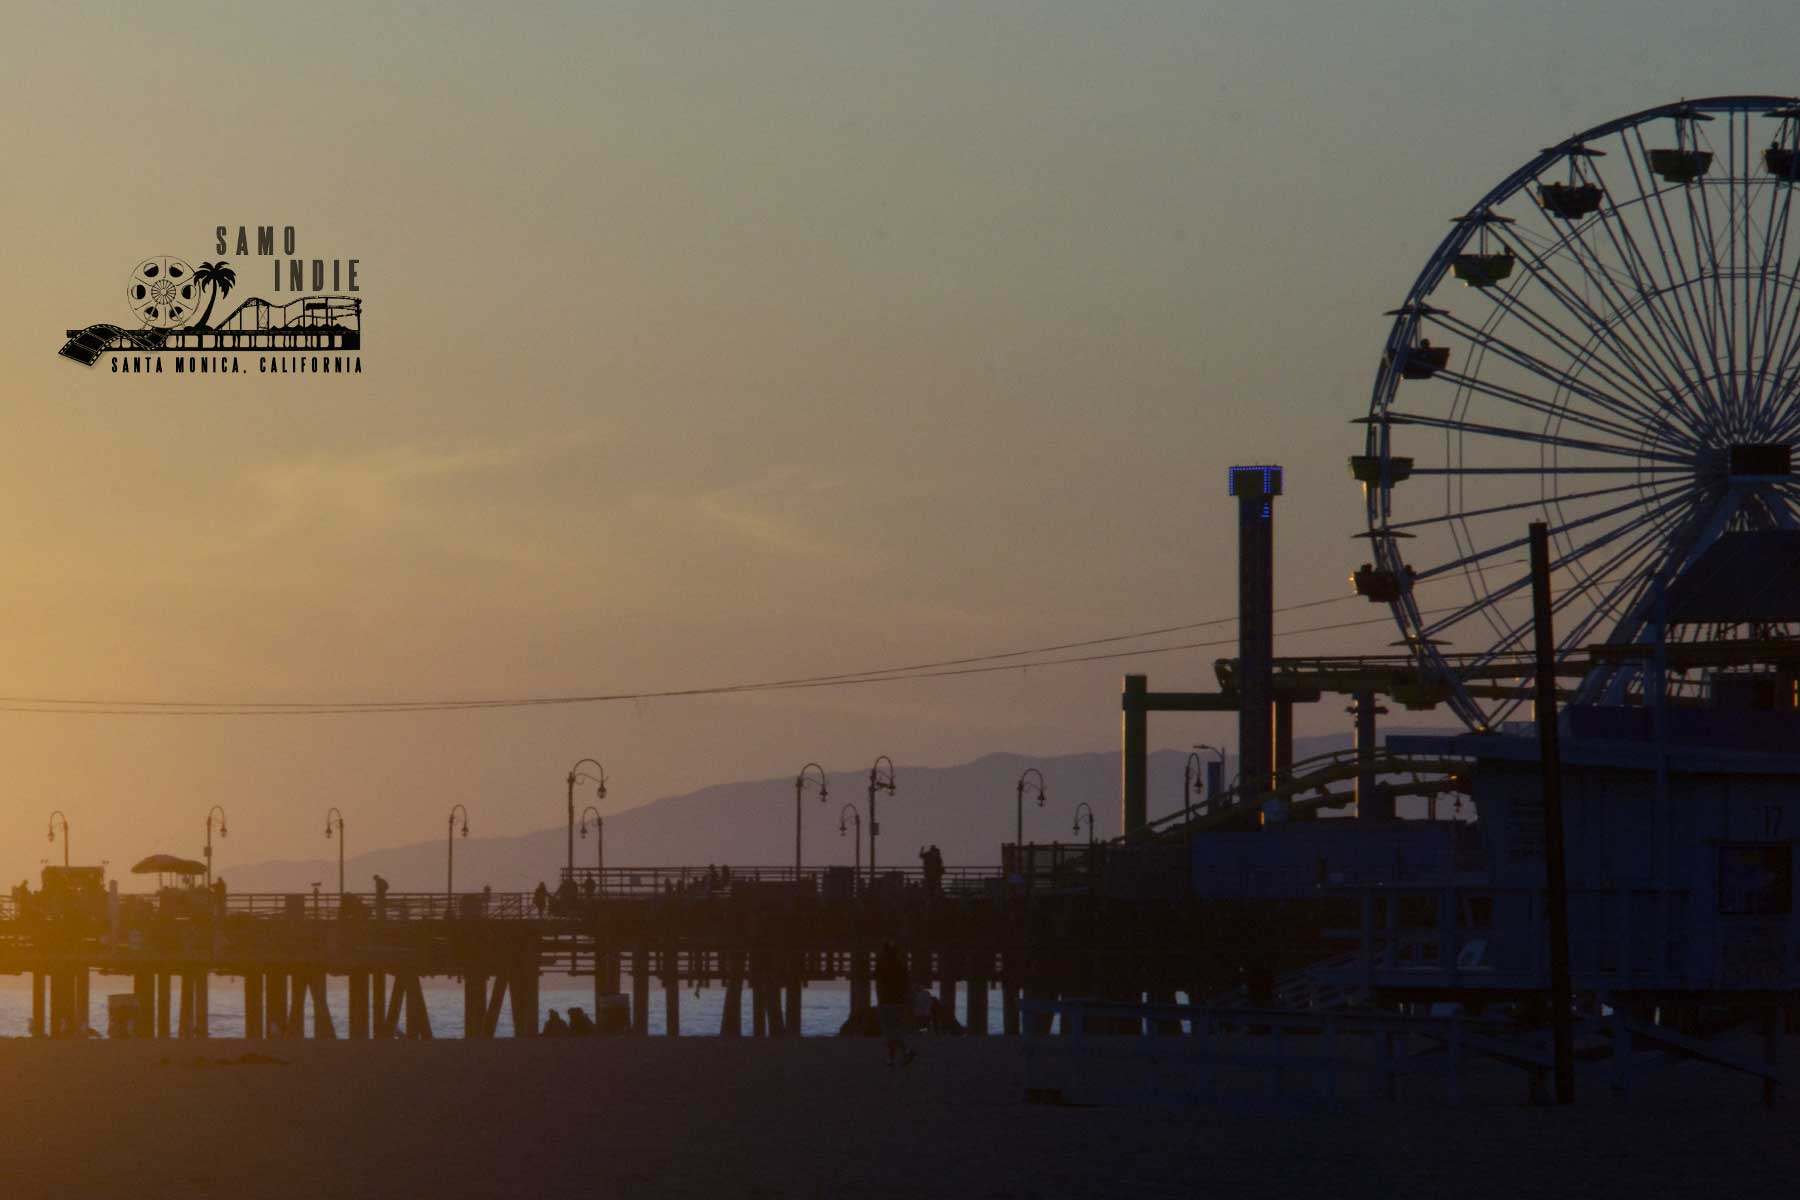 'Reconnection' gets Honorable Mention Award at SaMo Indie Fest Film Festival in Santa Monica, California, USA